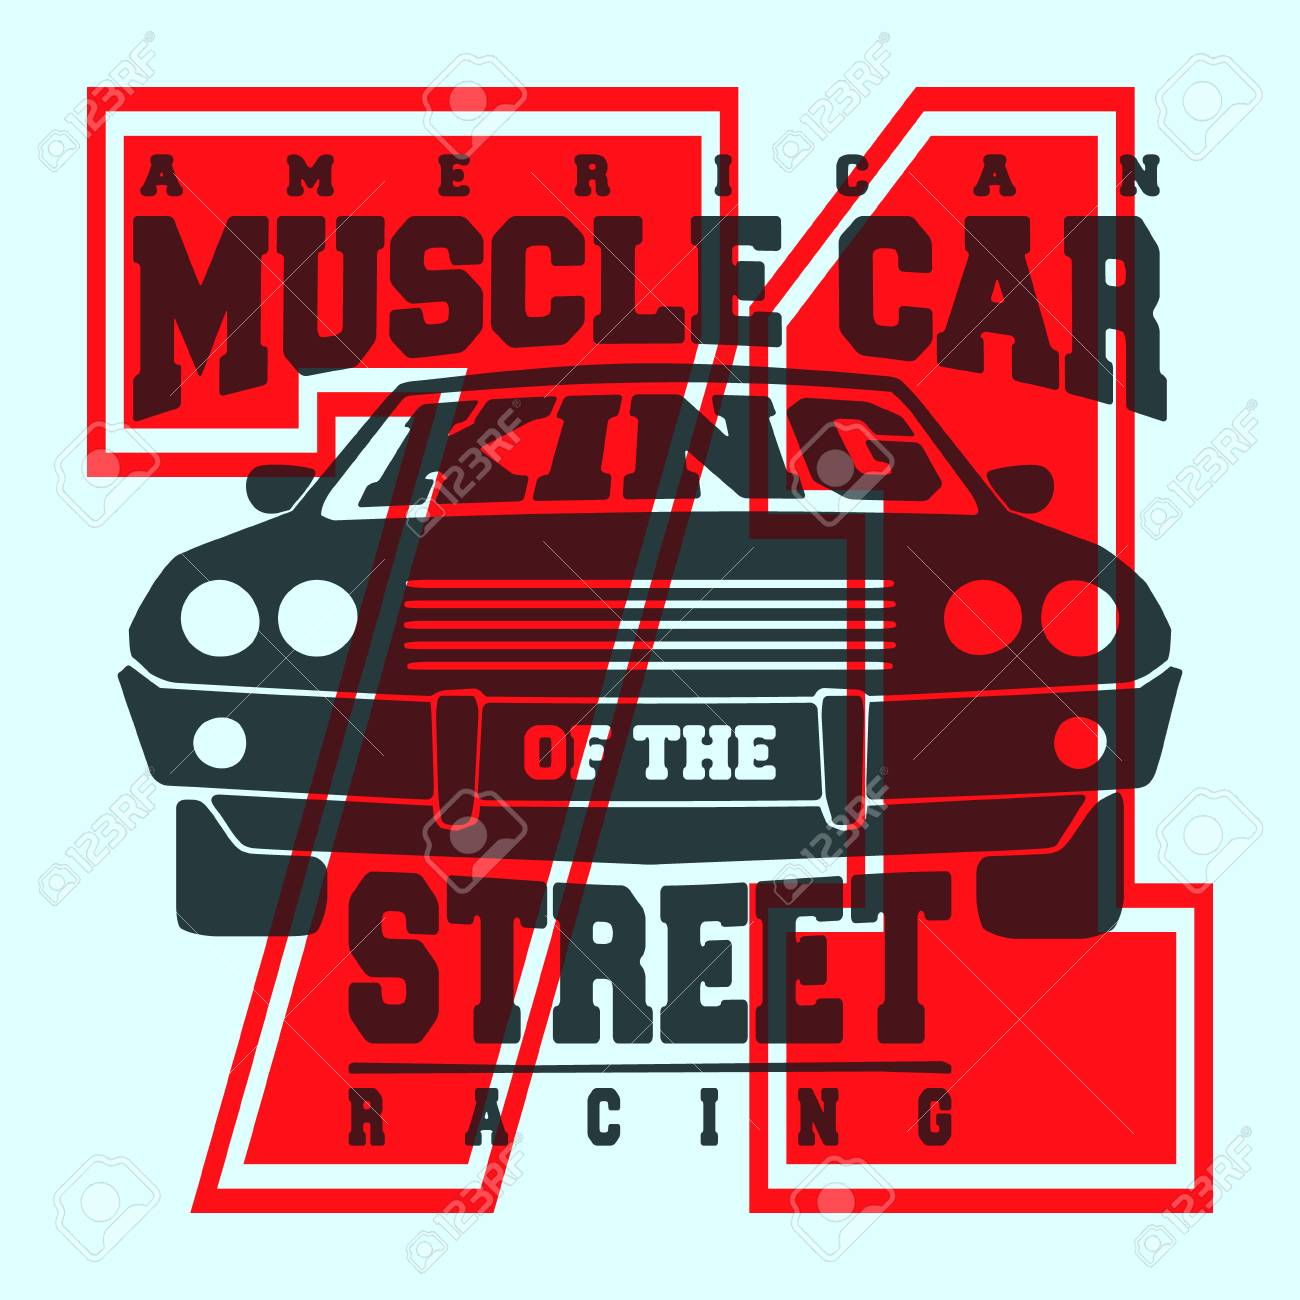 18548d1a T-shirt print design. American muscle car vintage t shirt stamp. Printing  and